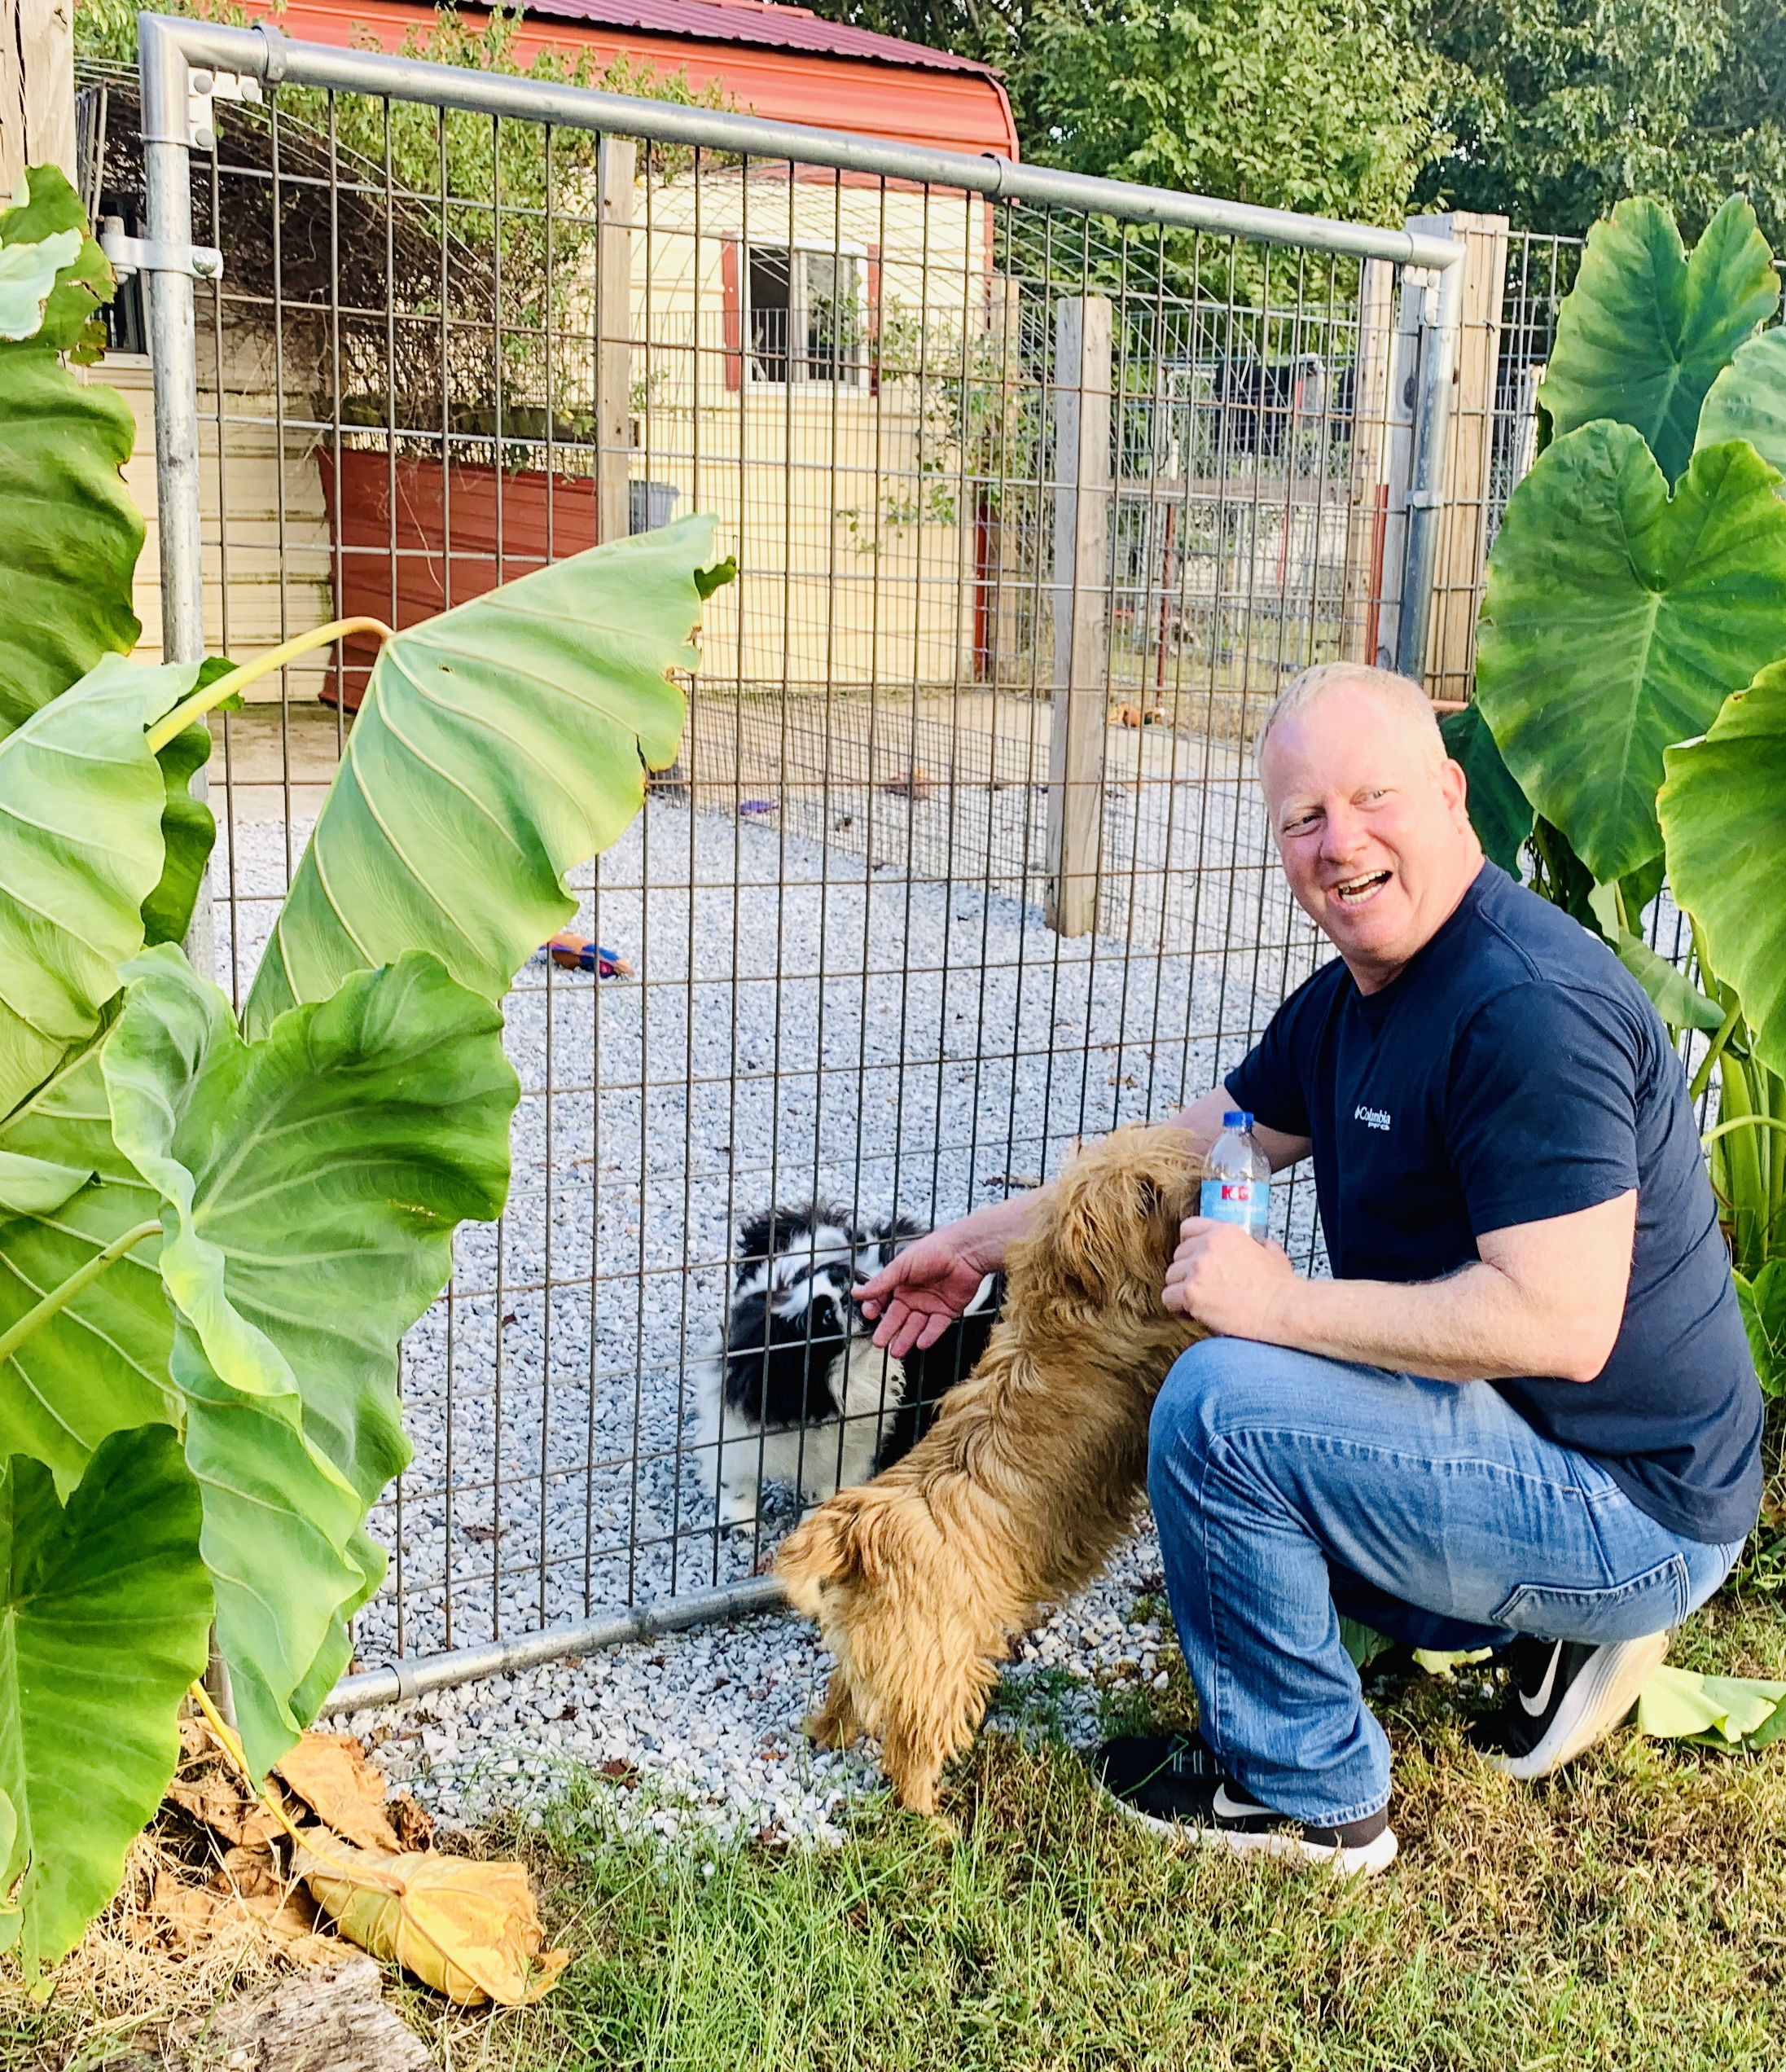 Frank Mineo Jr. interacts with one of Judy's dogs